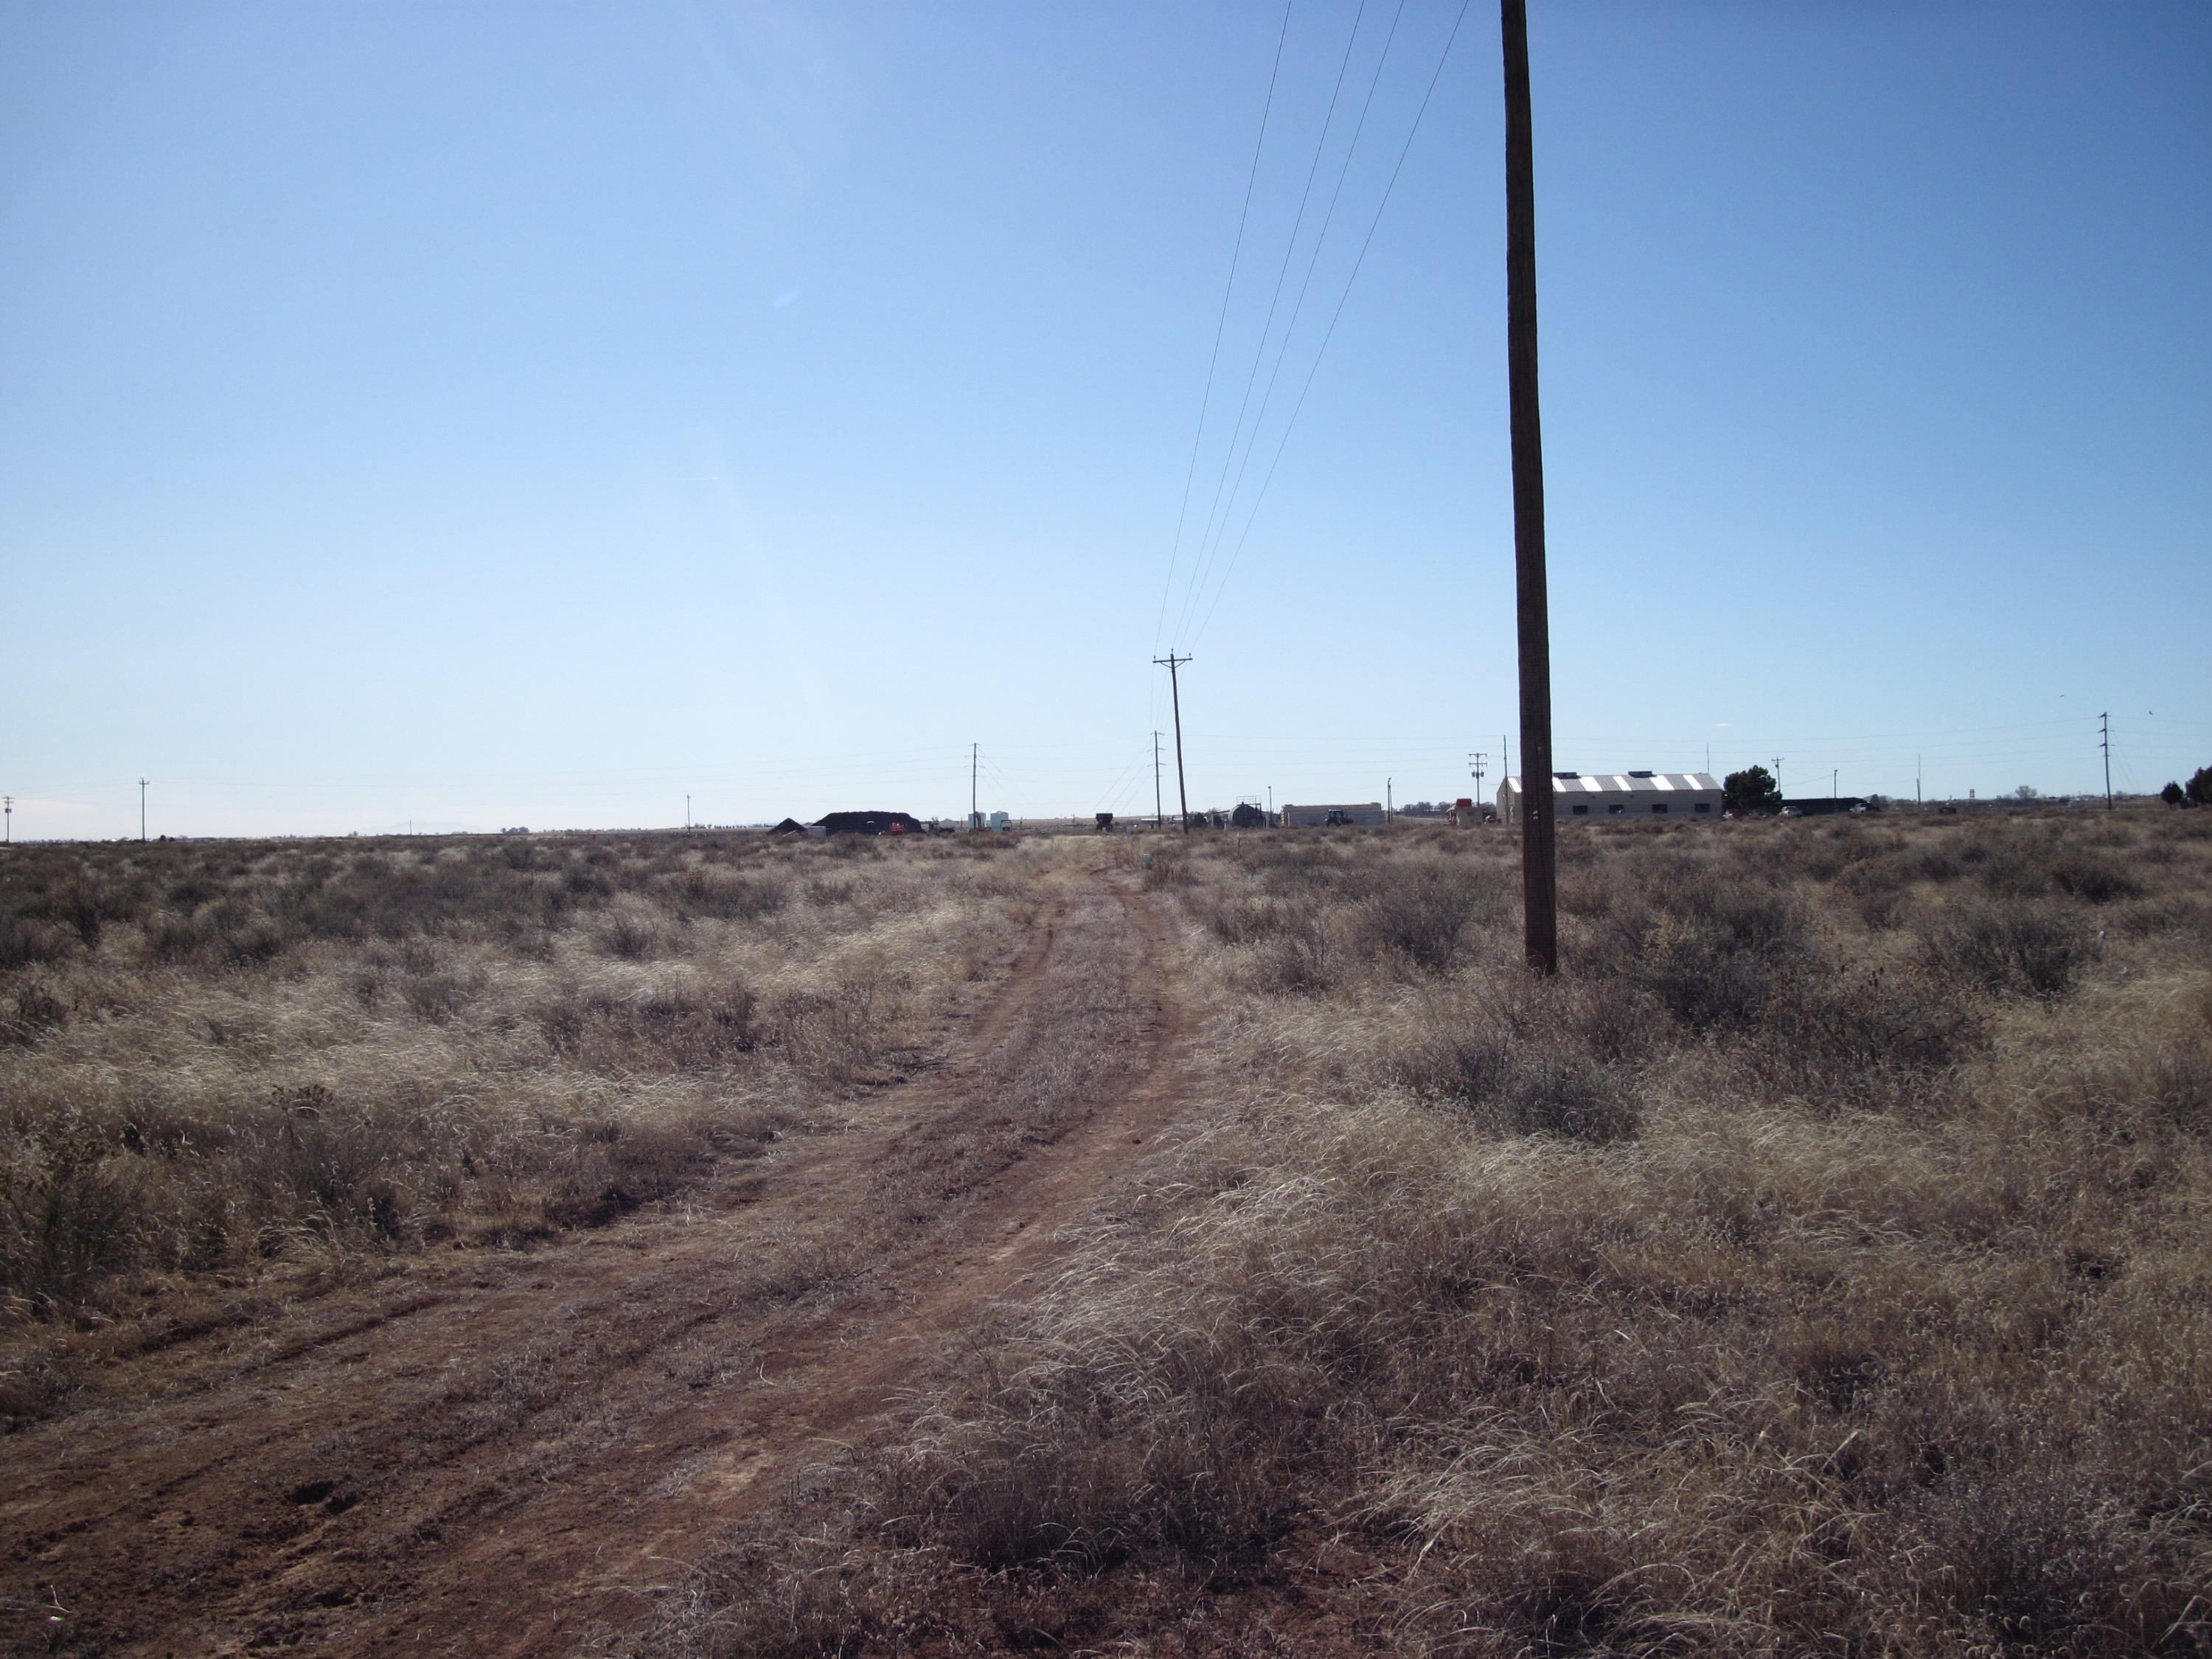 Fourth St, Salt Mission Tr. Avenue, Moriarty, NM 87035 - Moriarty, NM real estate listing